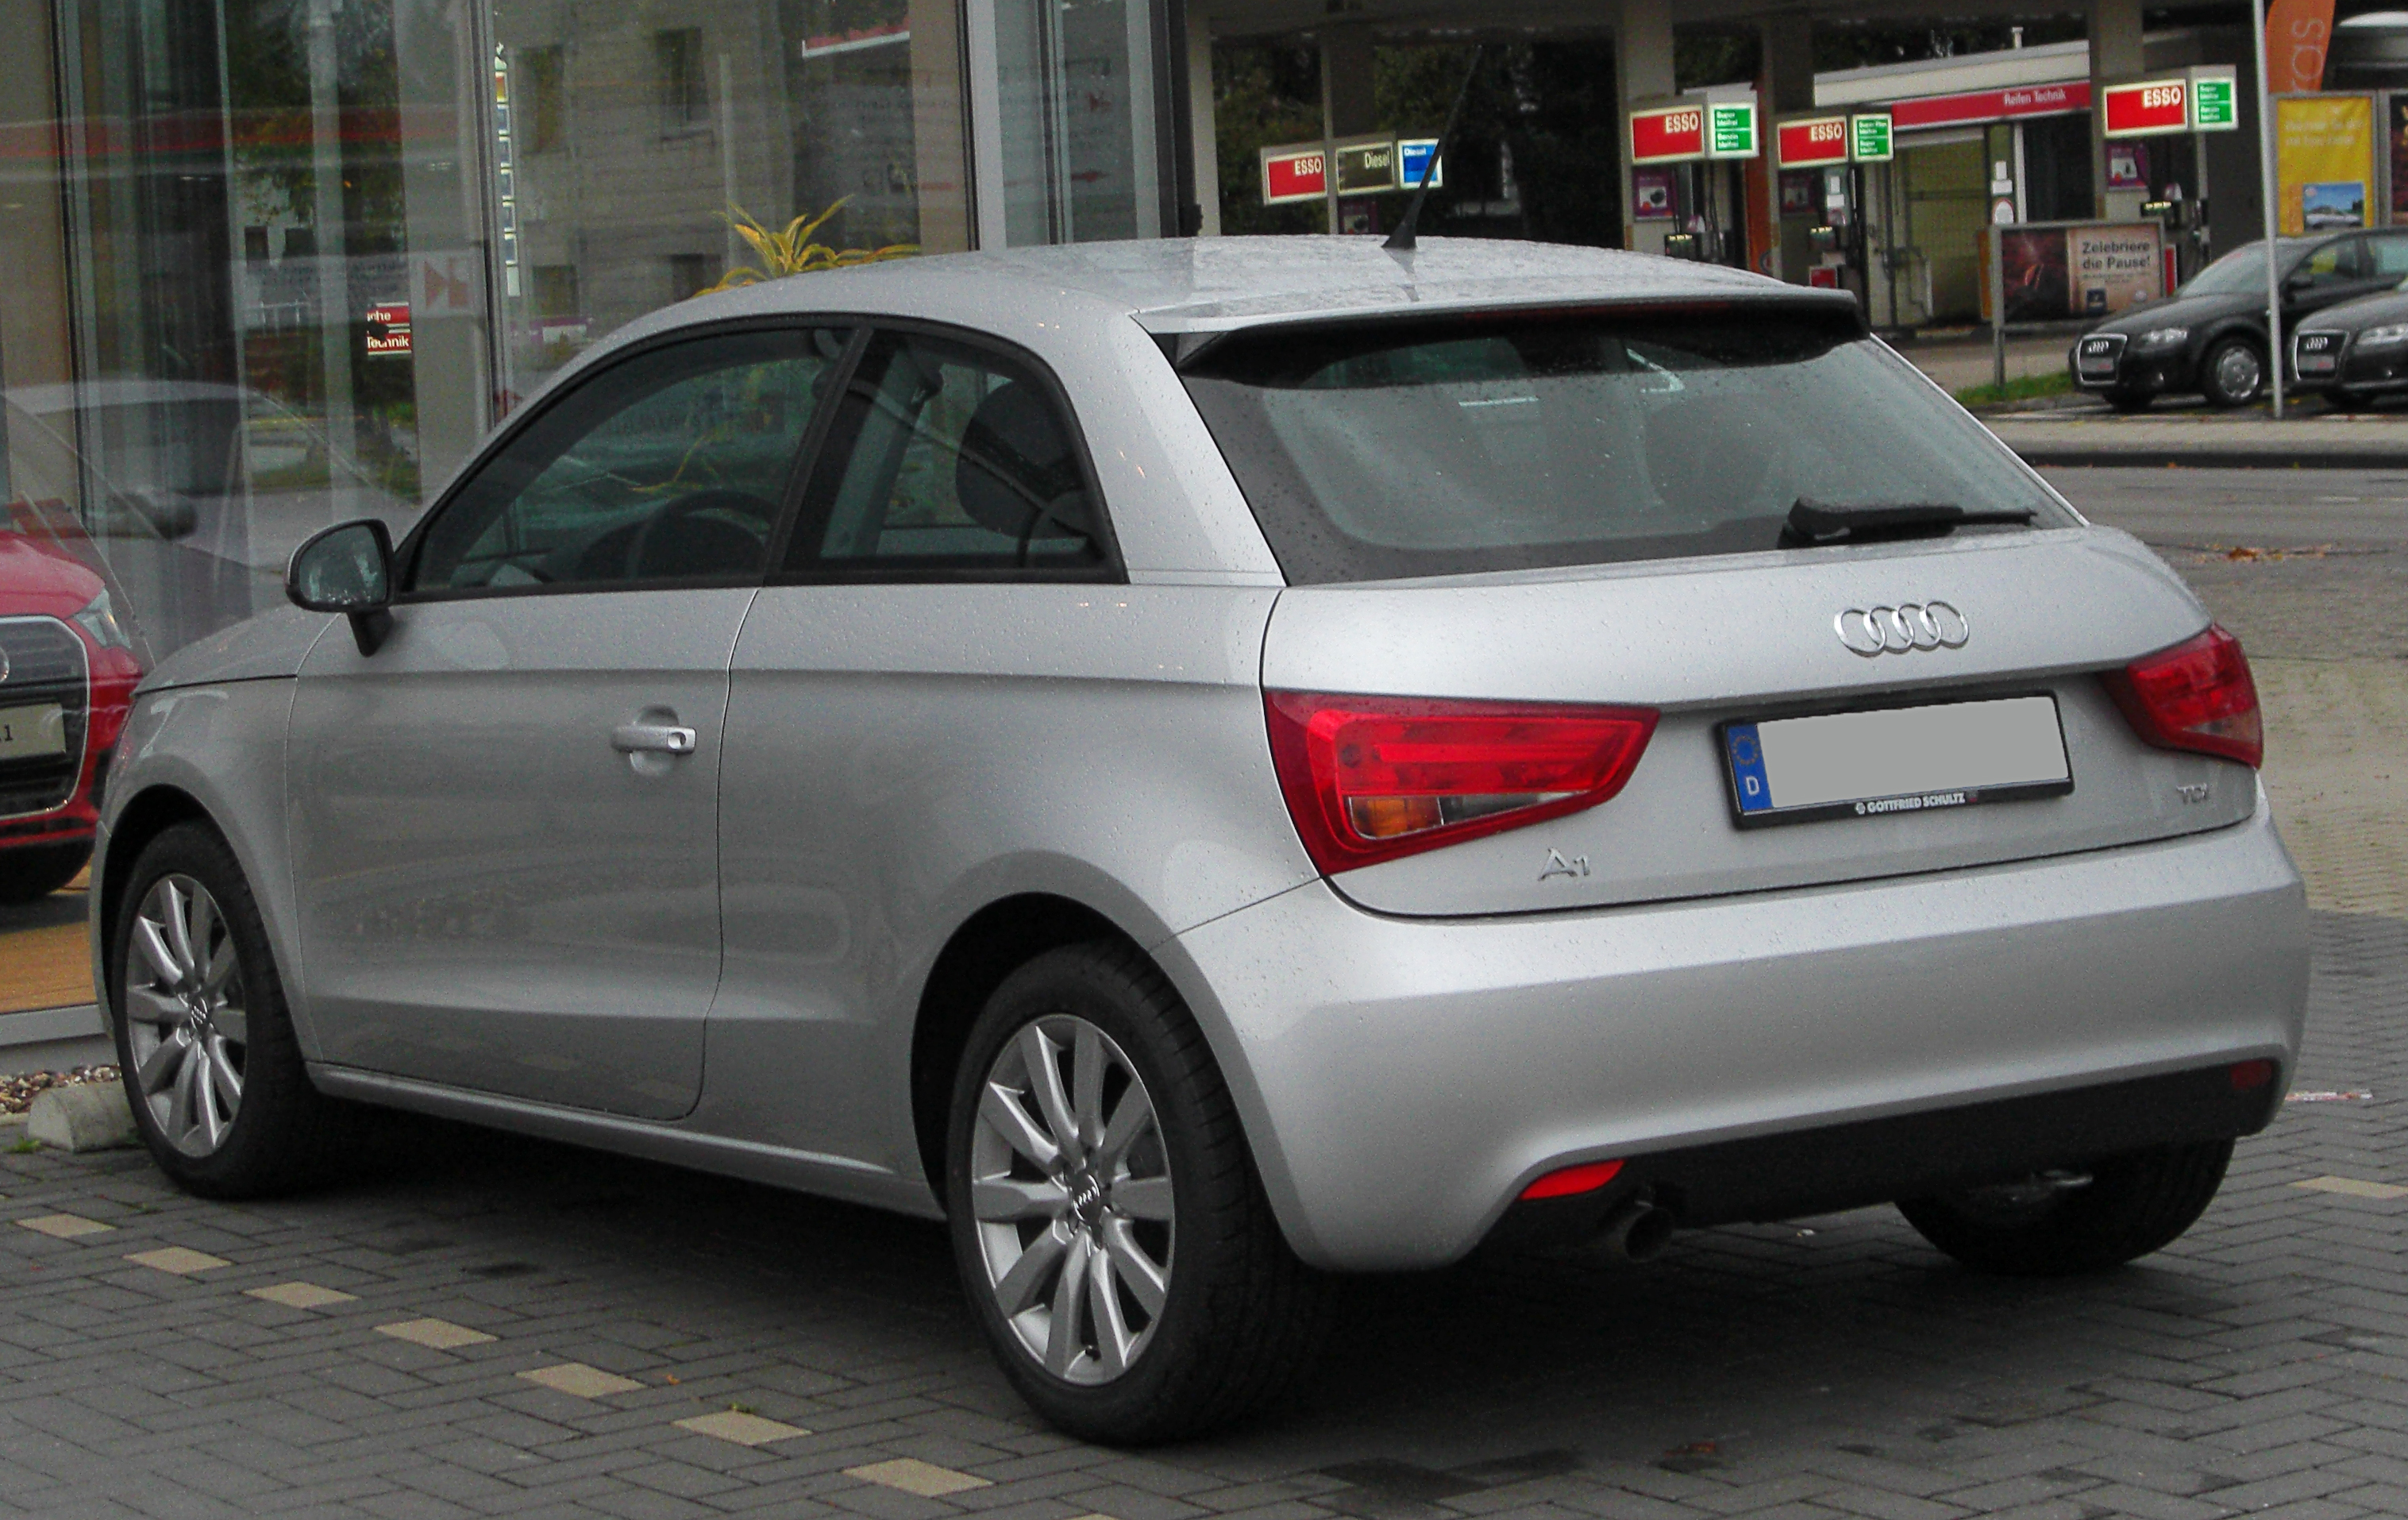 file audi a1 1 6 tdi ambition rear. Black Bedroom Furniture Sets. Home Design Ideas